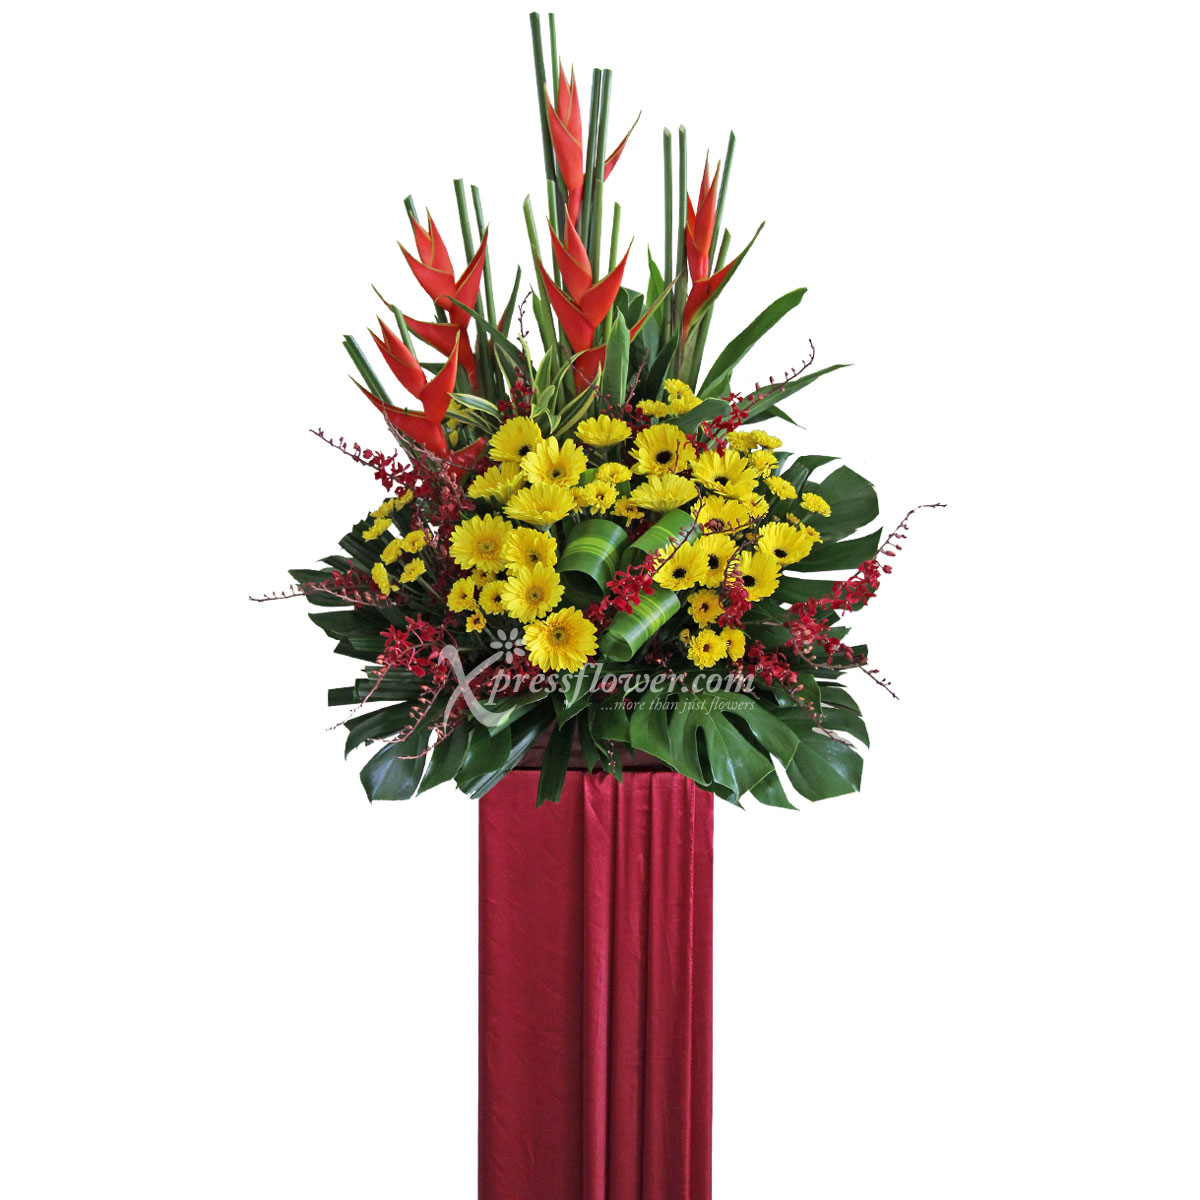 CS1704 Extraordinary Feat congratulatory flower opening stand